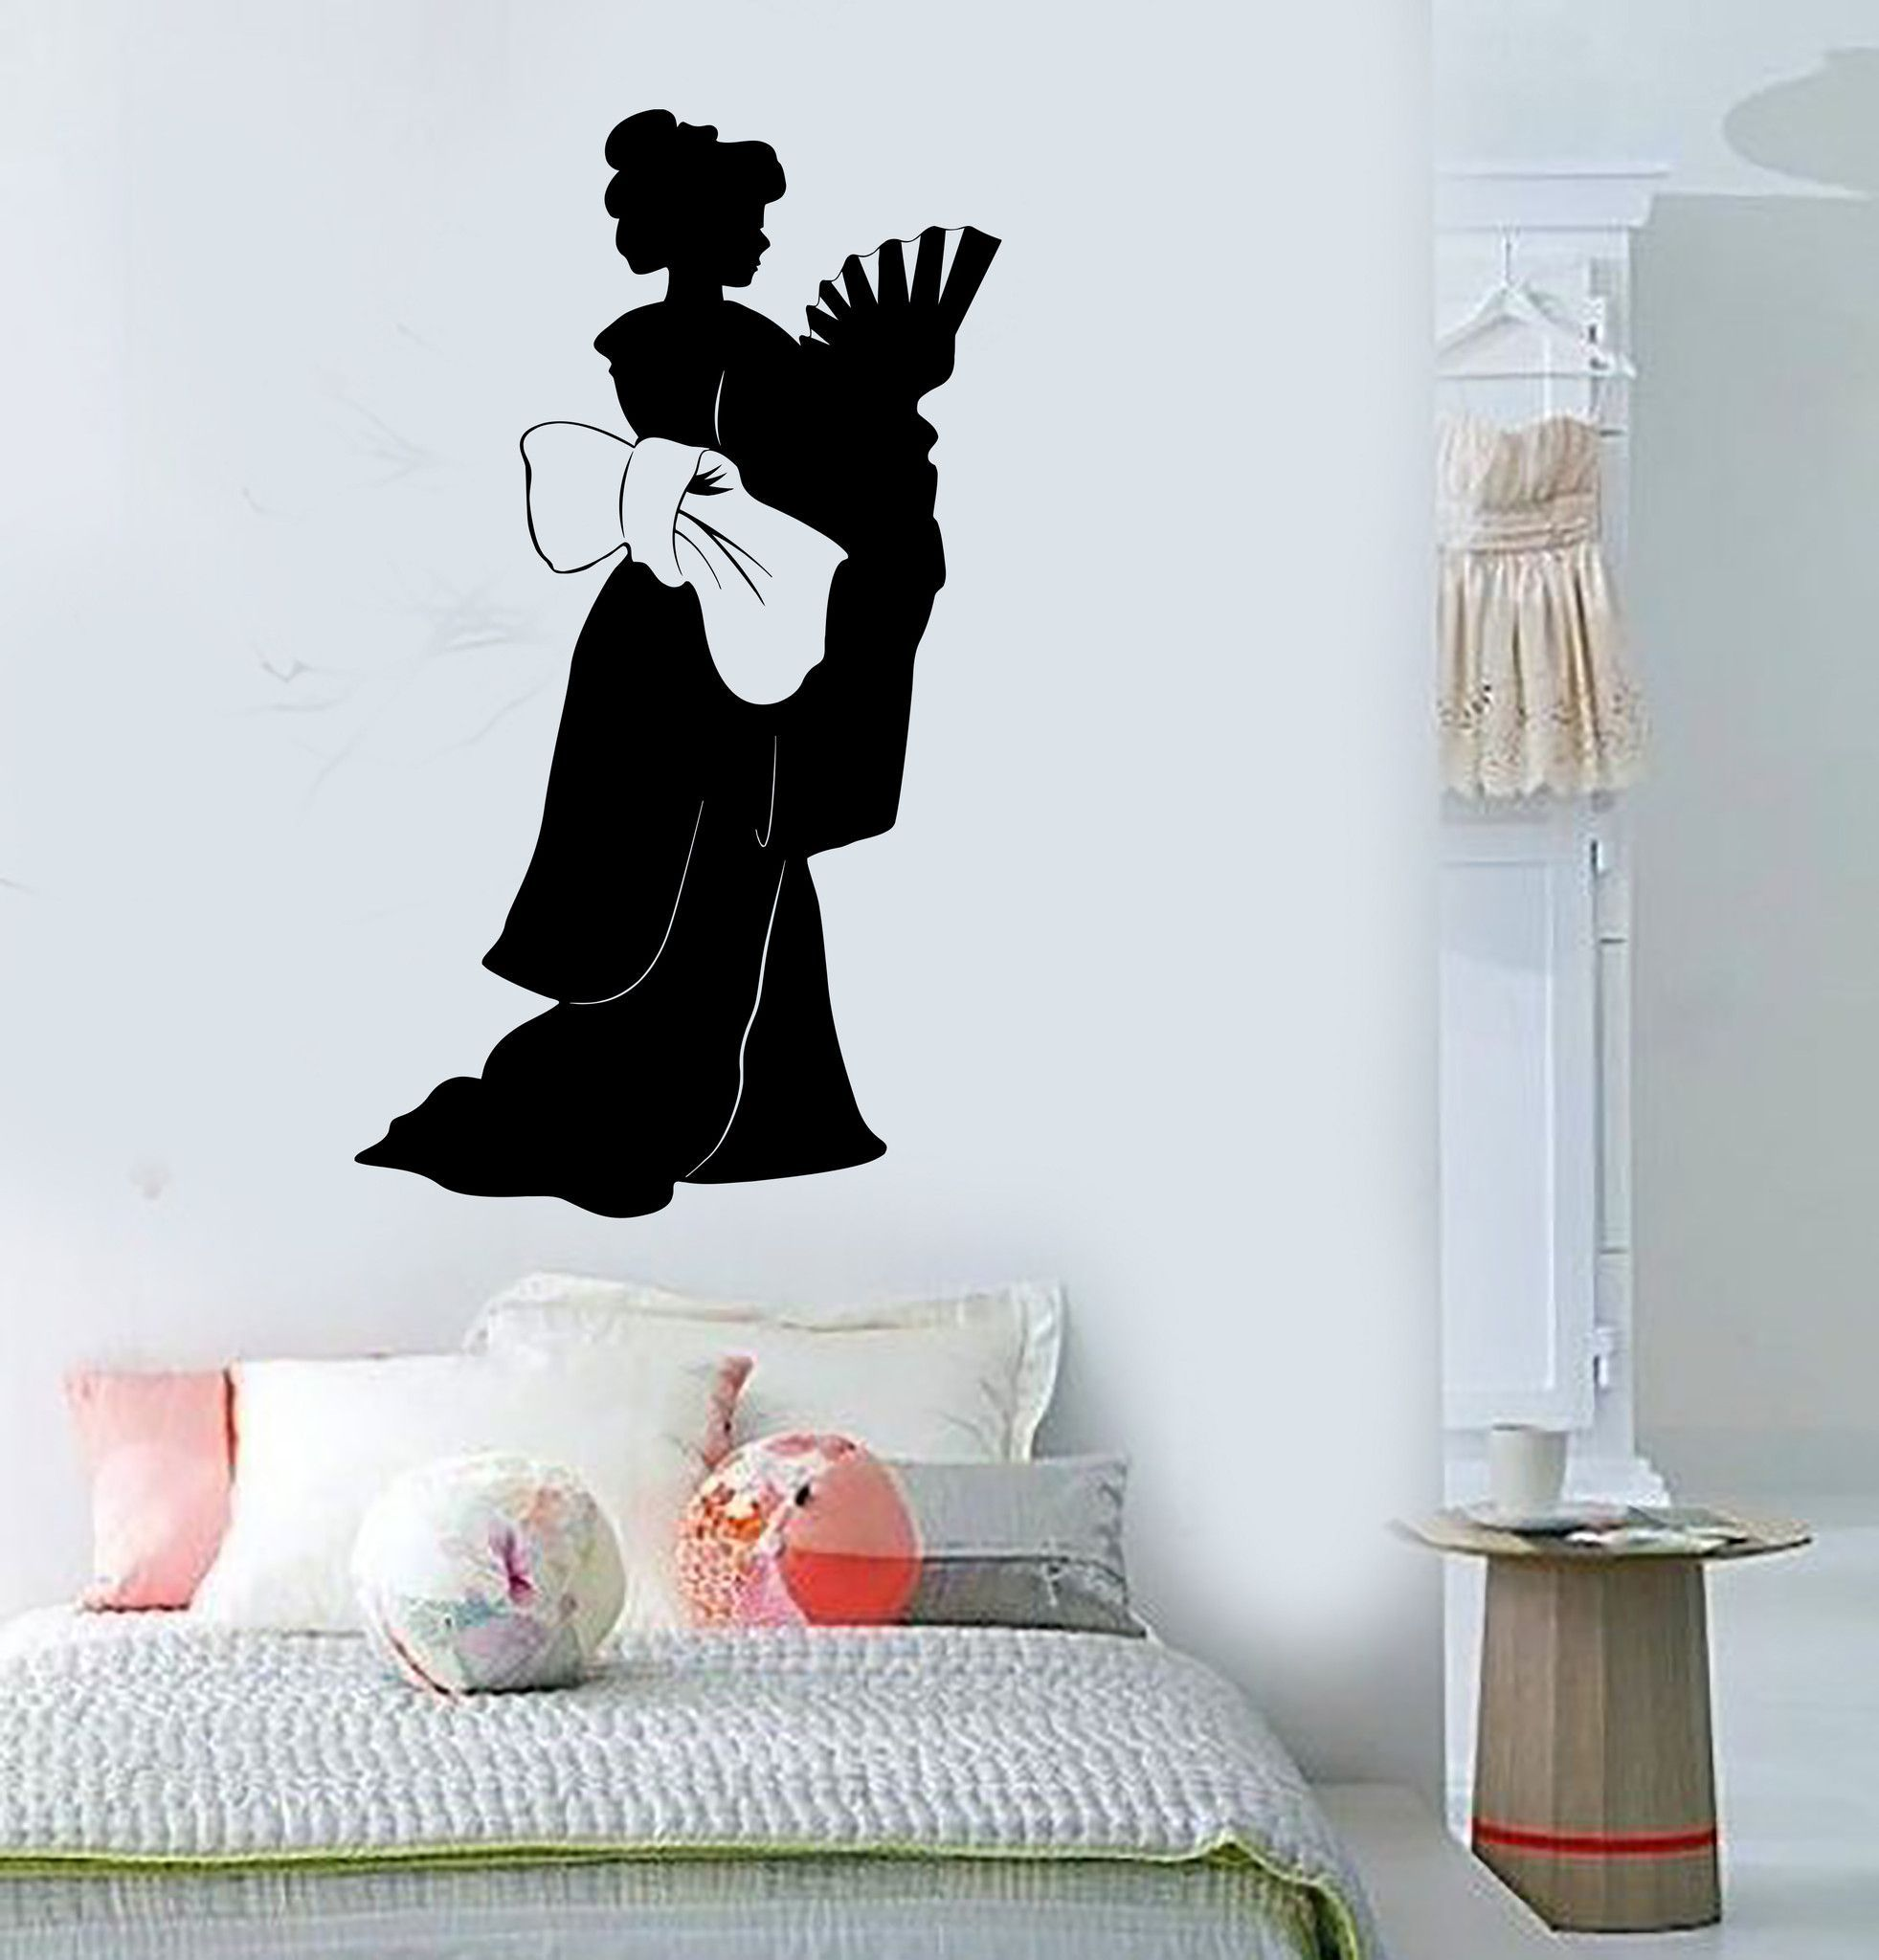 Vinyl Wall Decal Geisha Asian Woman Silhouette Oriental Stickers - Vinyl wall decals asian